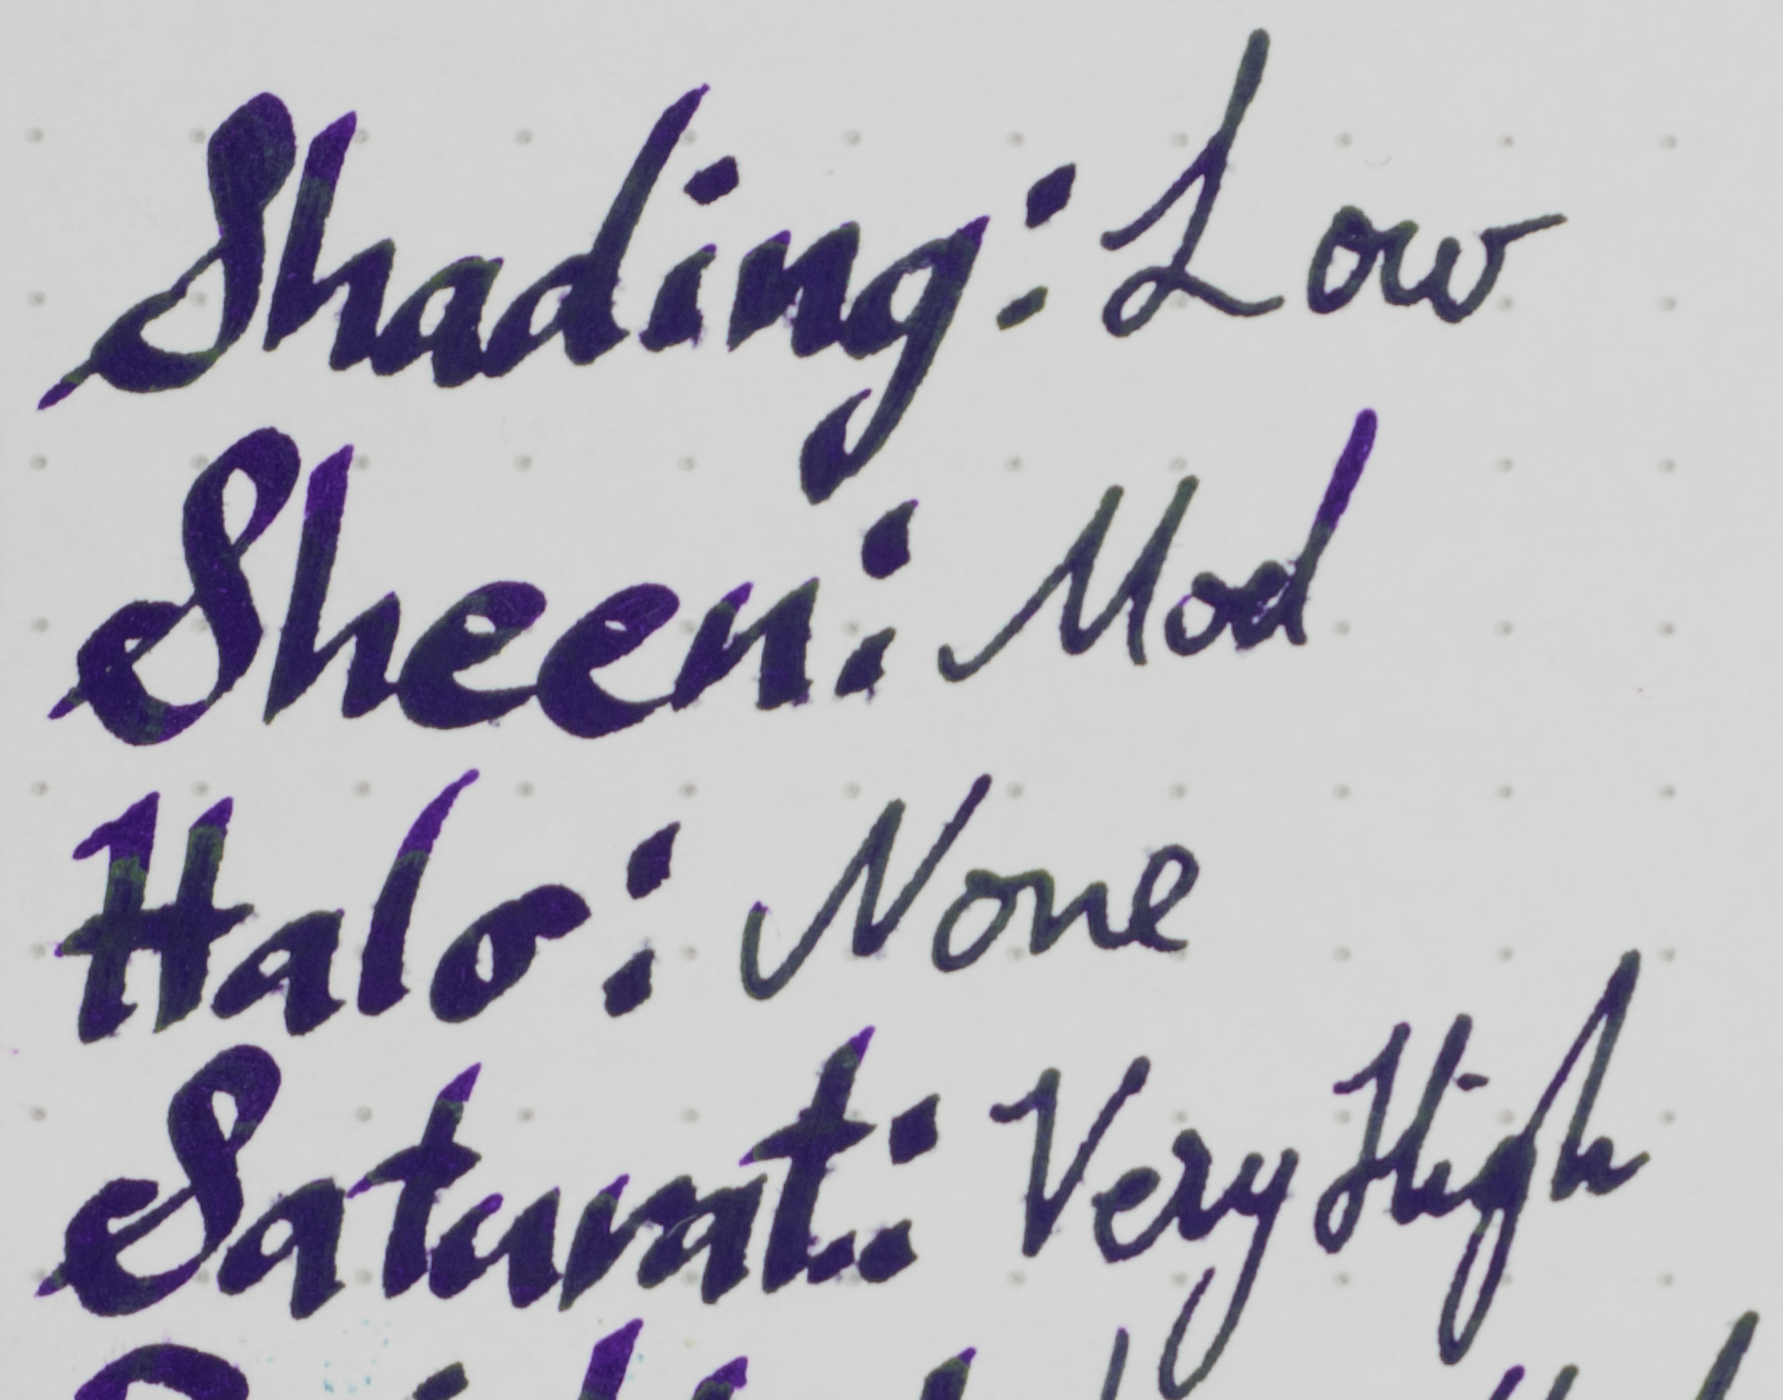 Copy of Shading Rhodia